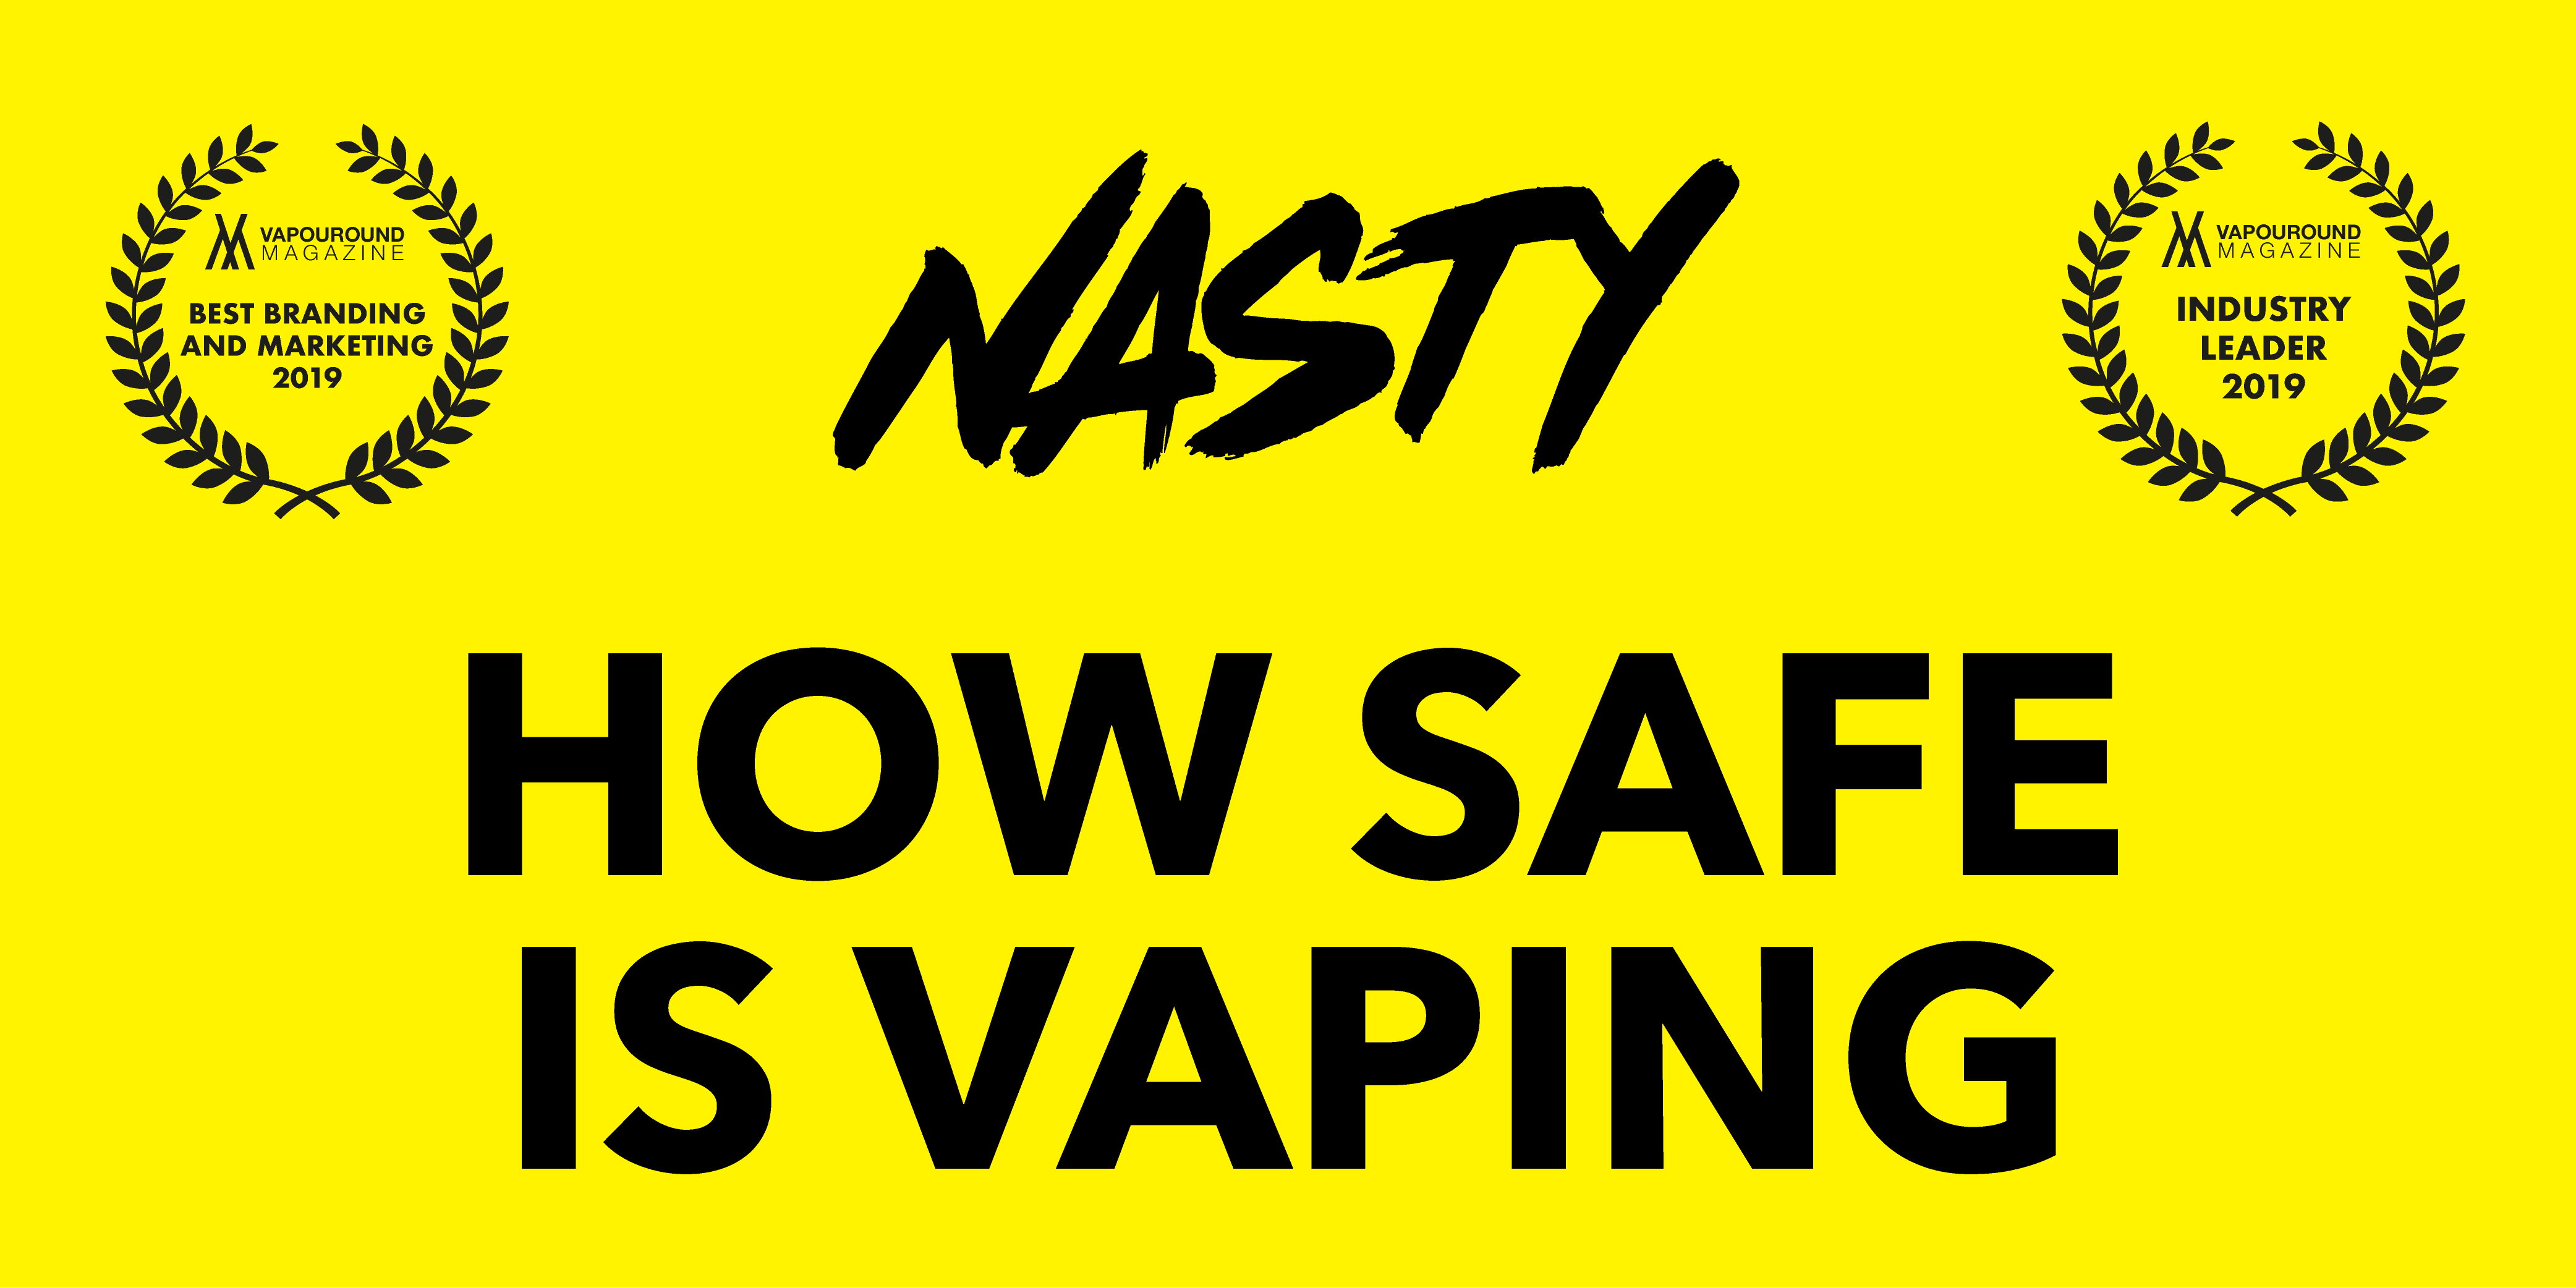 How safe is vaping?